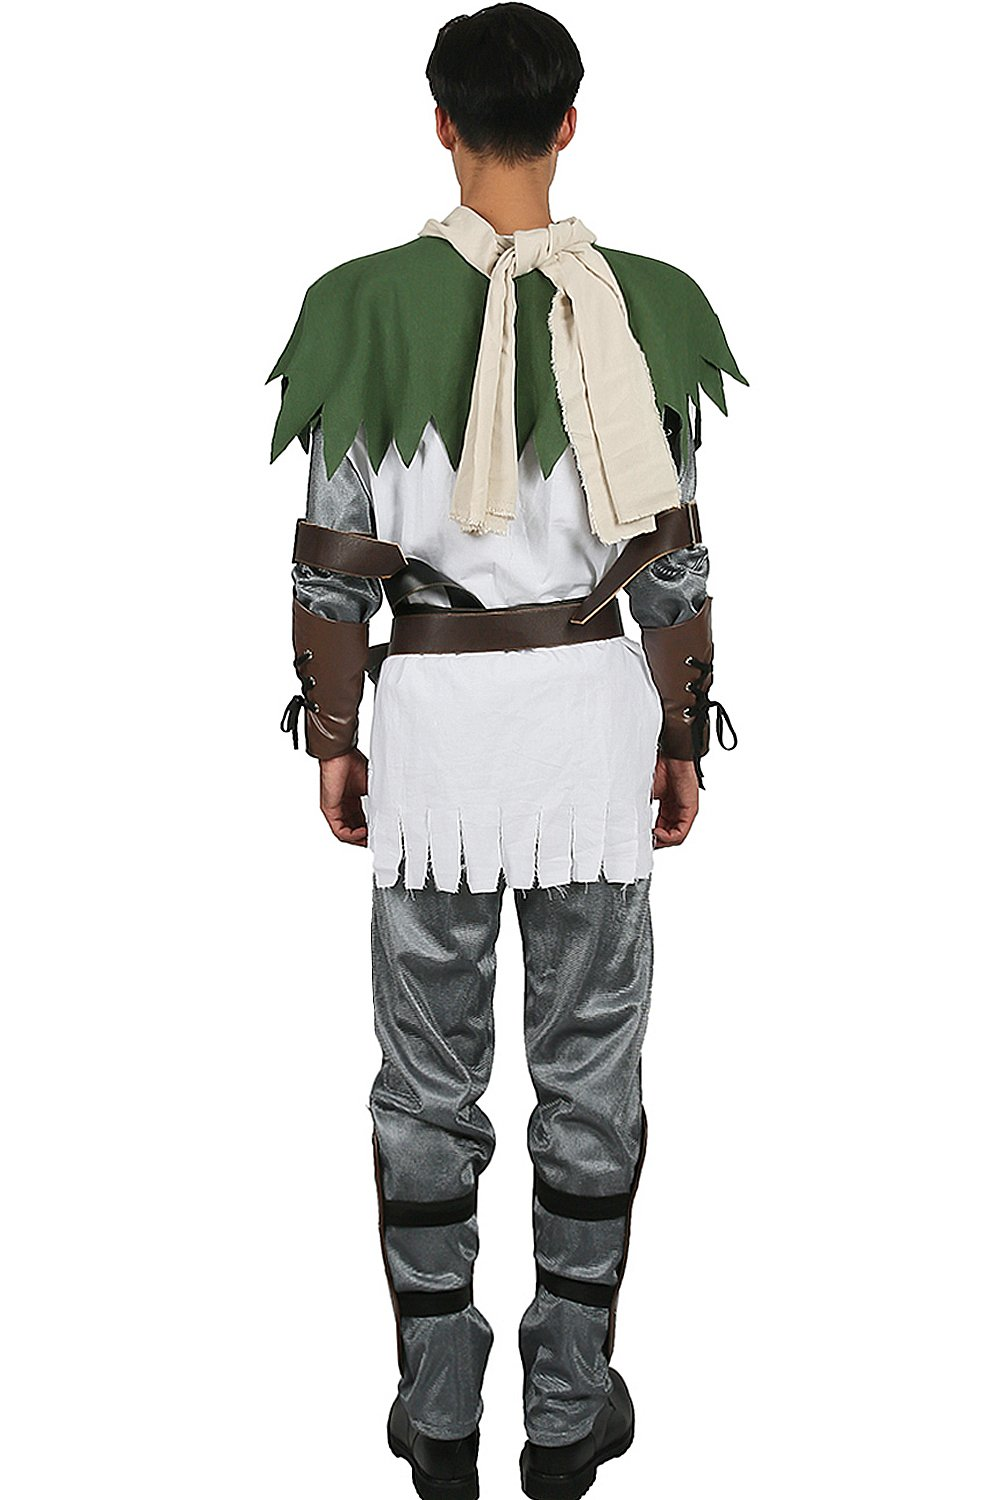 Solaire Costume Sun Warrior Outfit for Halloween Cosplay L by xcostume (Image #2)